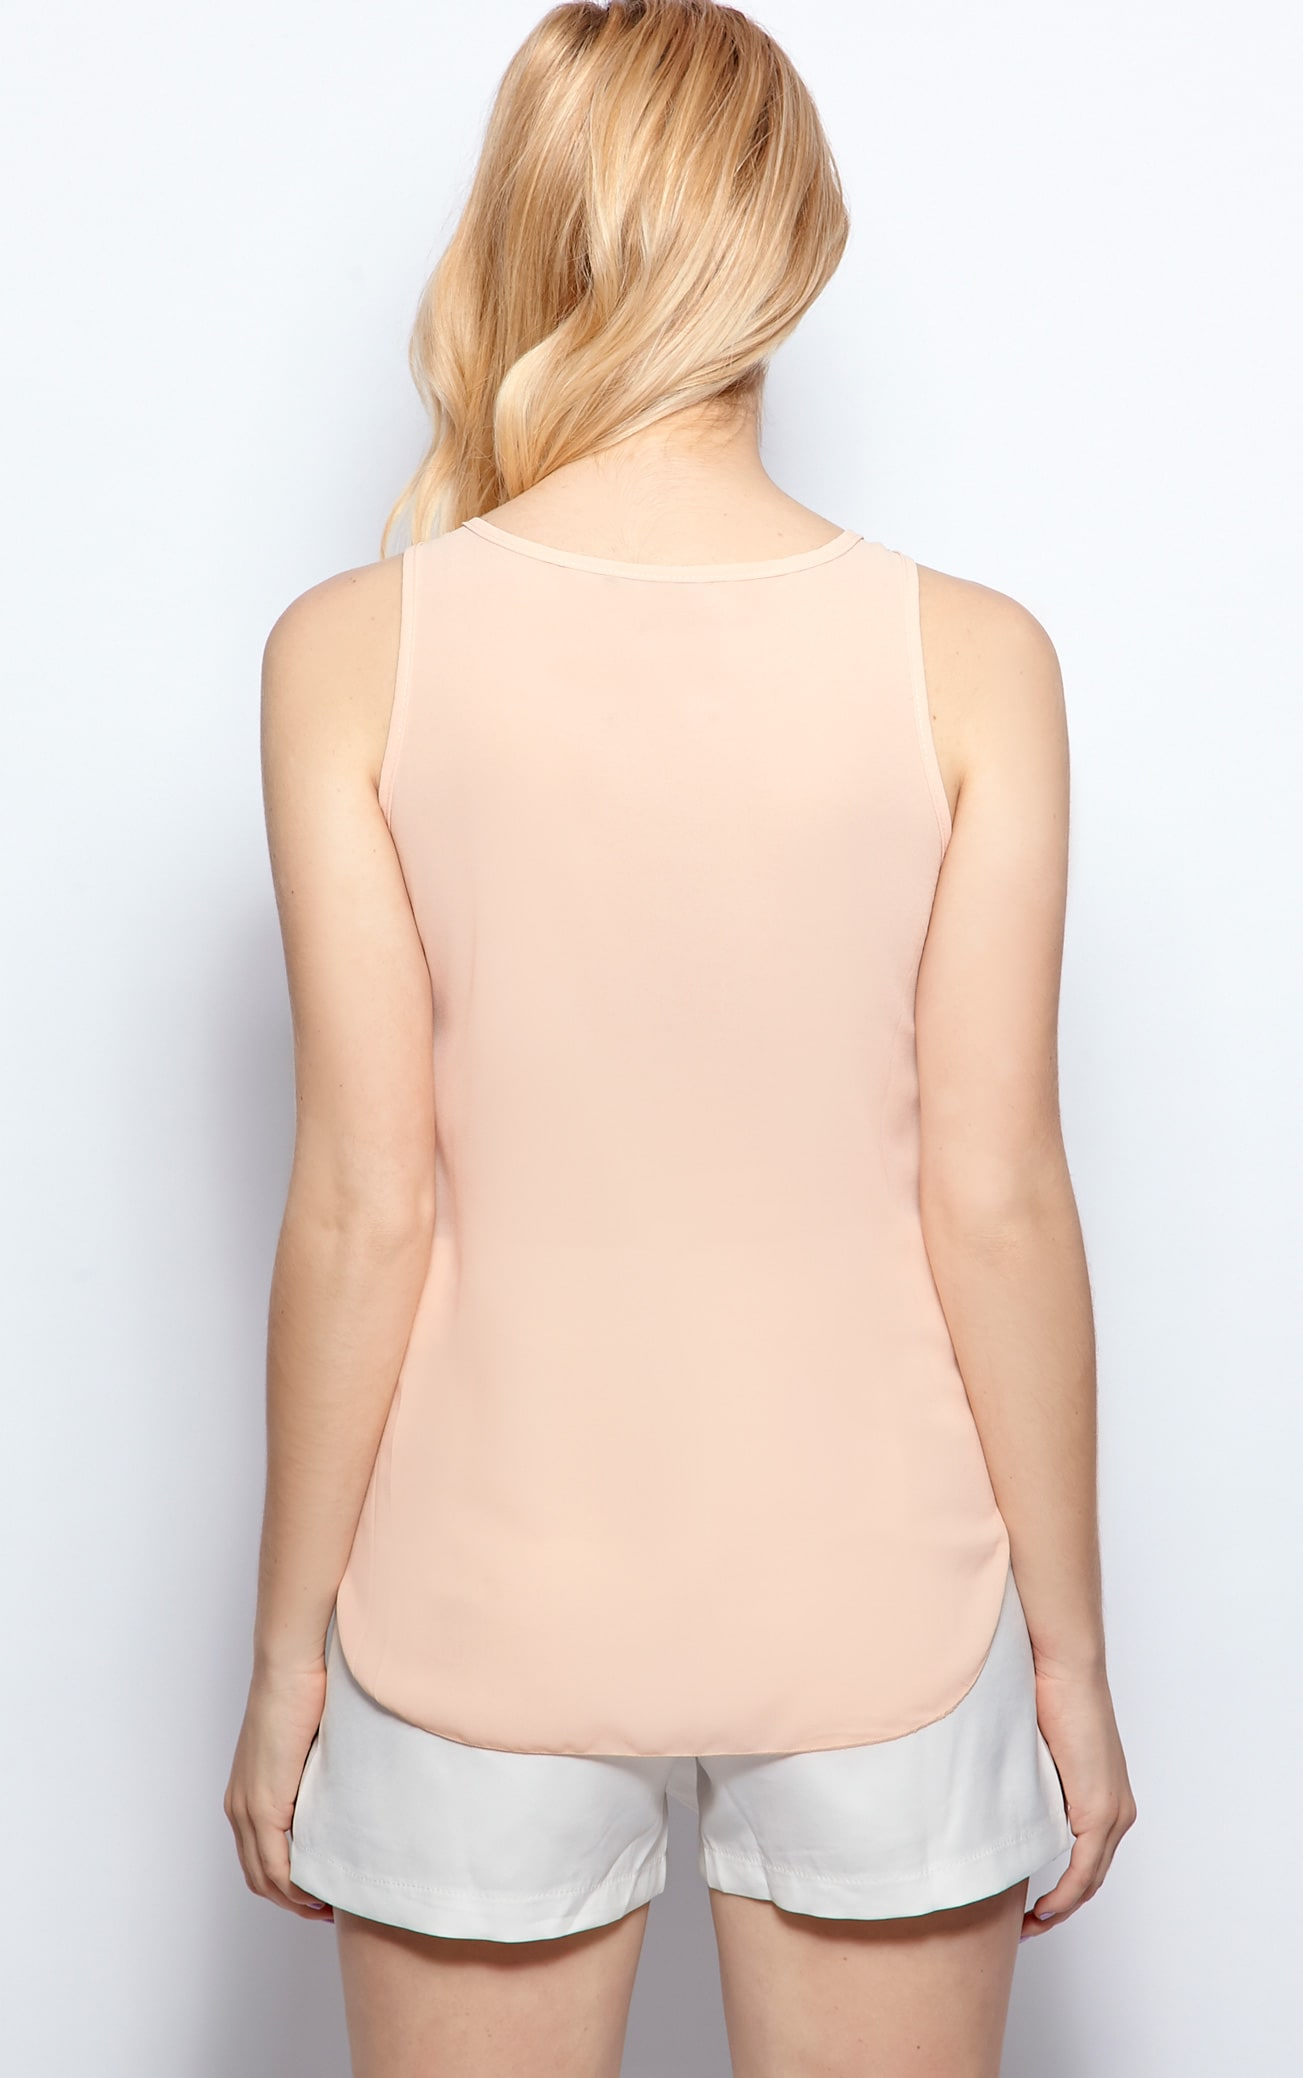 Raine Peach Embellished Cami  2